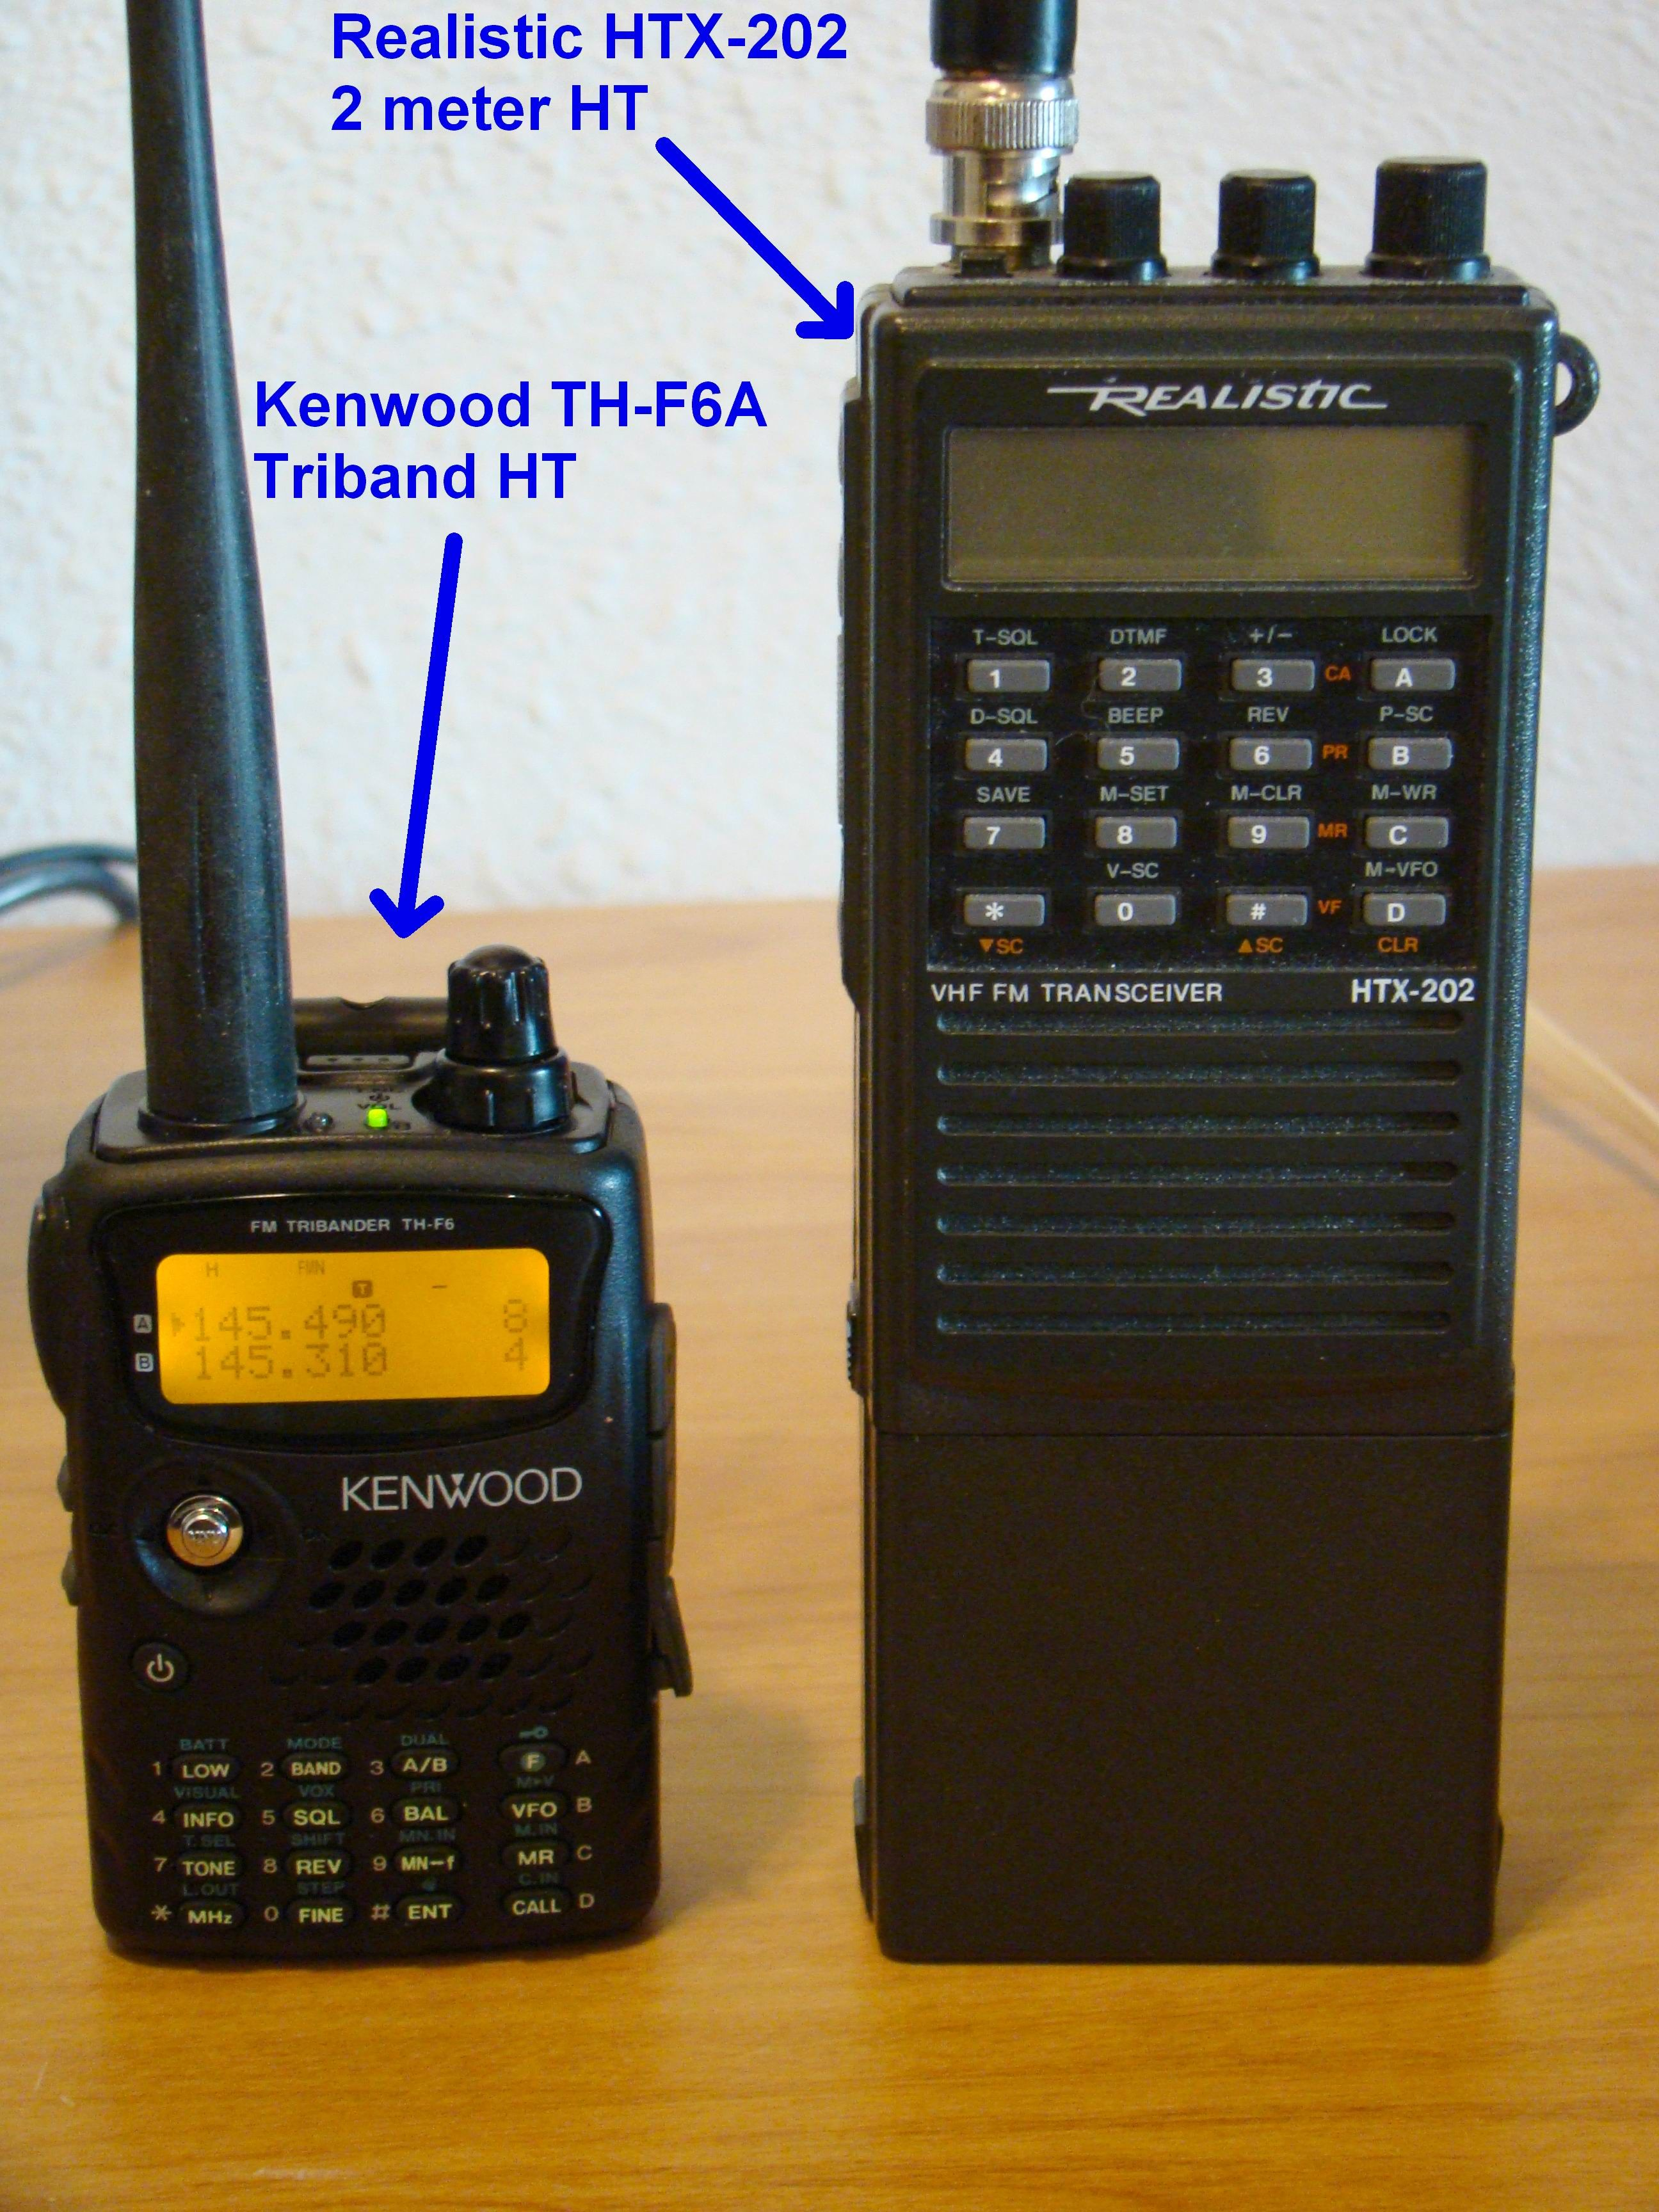 major competition stations ham radio Kenwood TH-F6A Triband Ham Radio HT Size Comparsion To An Older Realistic  HTX-